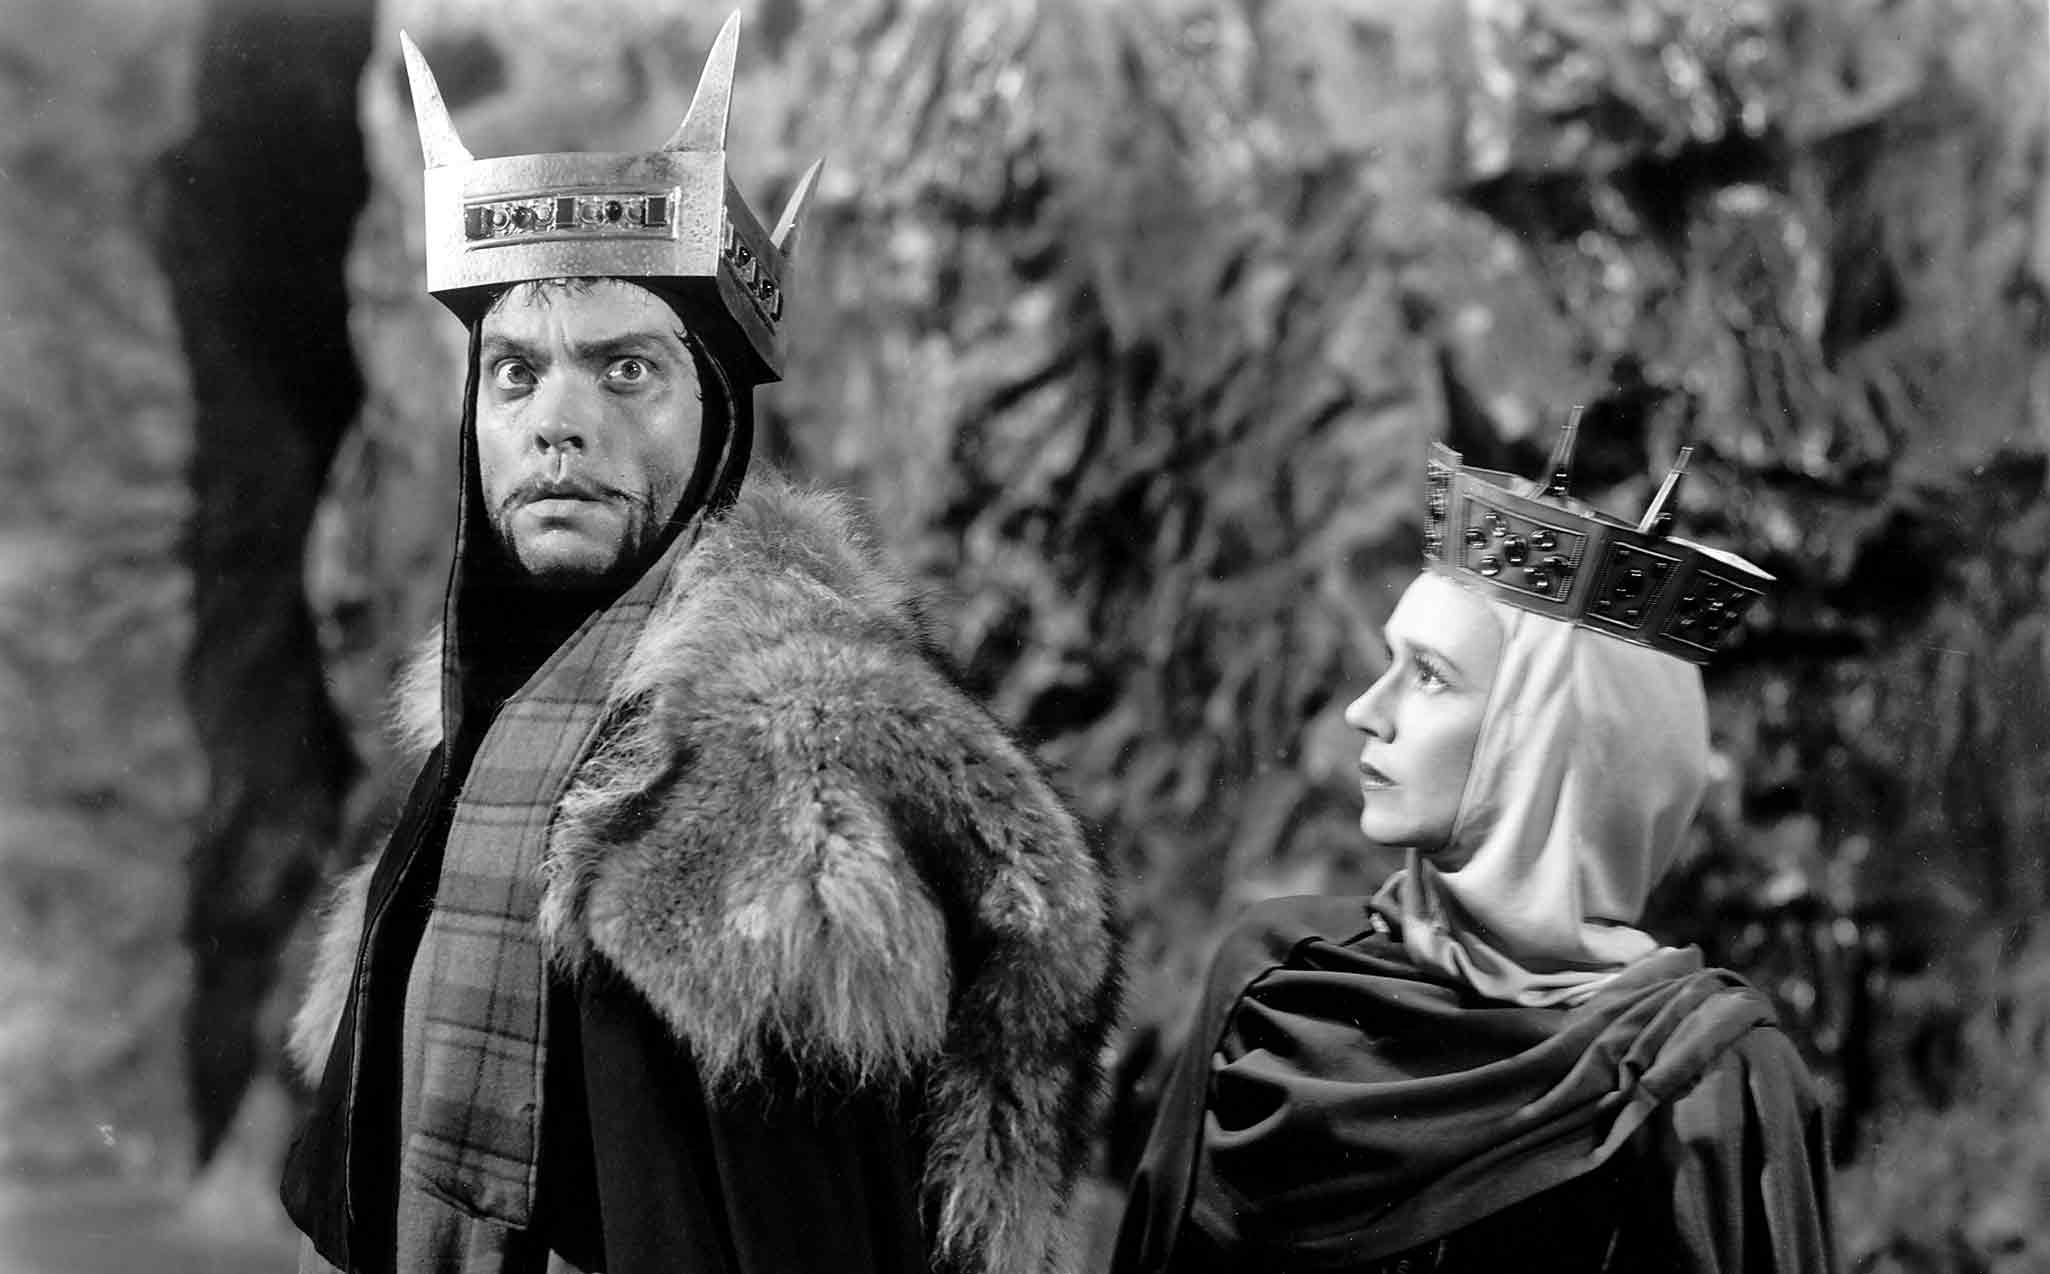 Macbeth (1948) Directed by Orson Welles Shown from left: Orson Welles (as Macbeth), Jeanette Nolan (as Lady Macbeth)